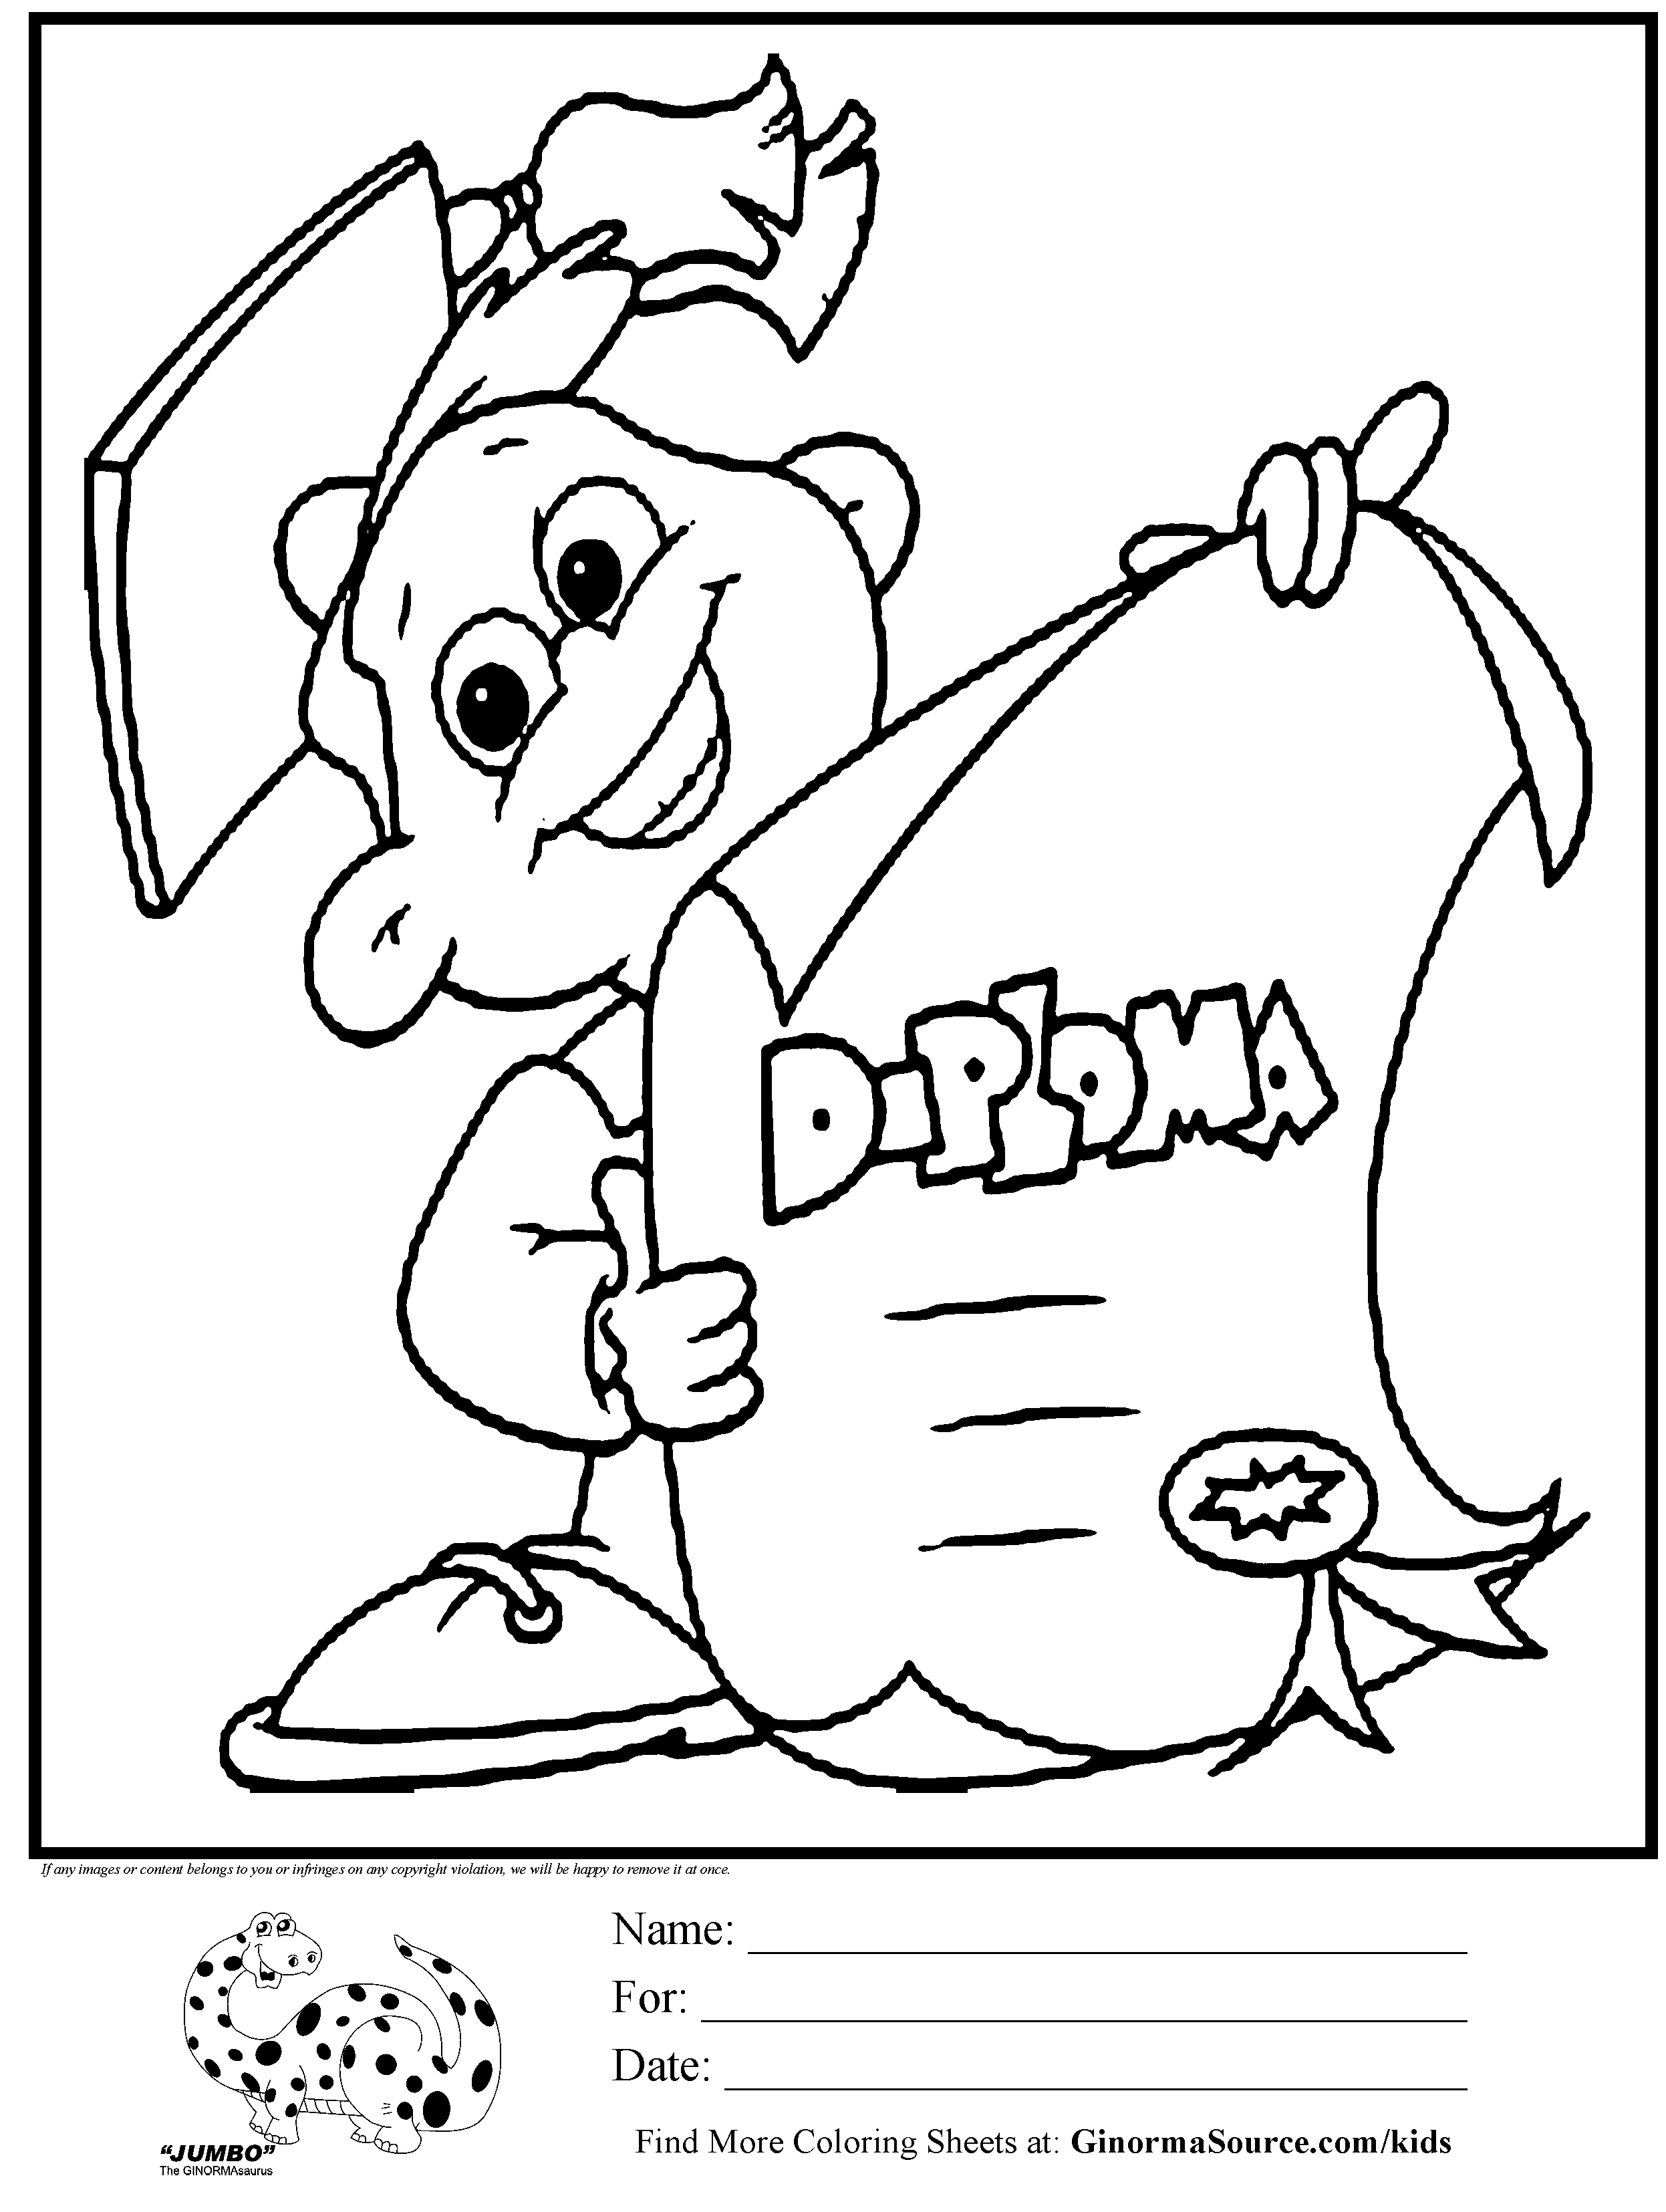 End Of The Year Coloring Pages For Kindergarten : Kindergarten graduation coloring pages az